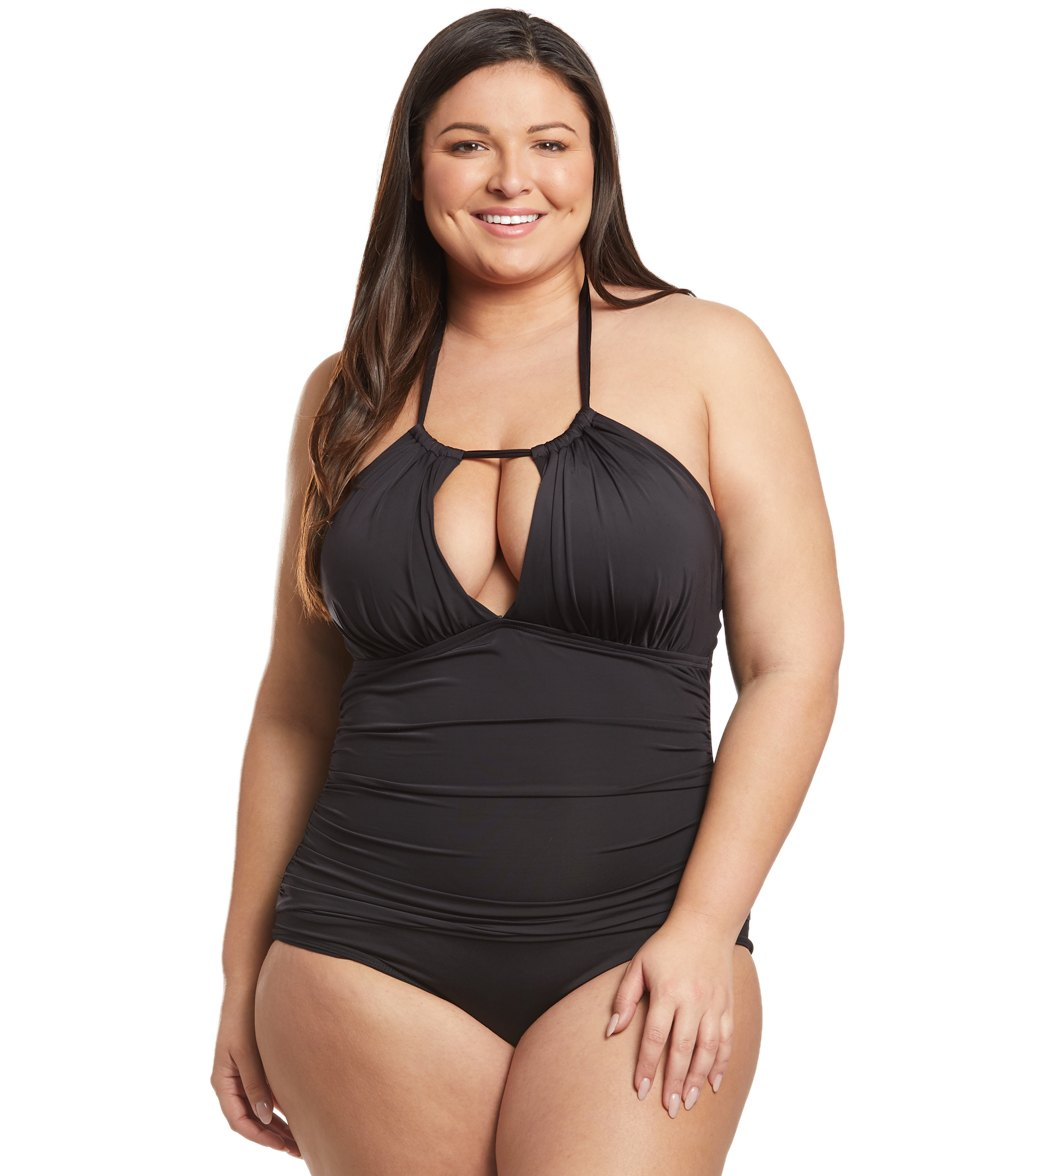 5d0a67c40d146 Kenneth Cole Reaction Plus Size High Neck One Piece Swimsuit at  SwimOutlet.com - Free Shipping